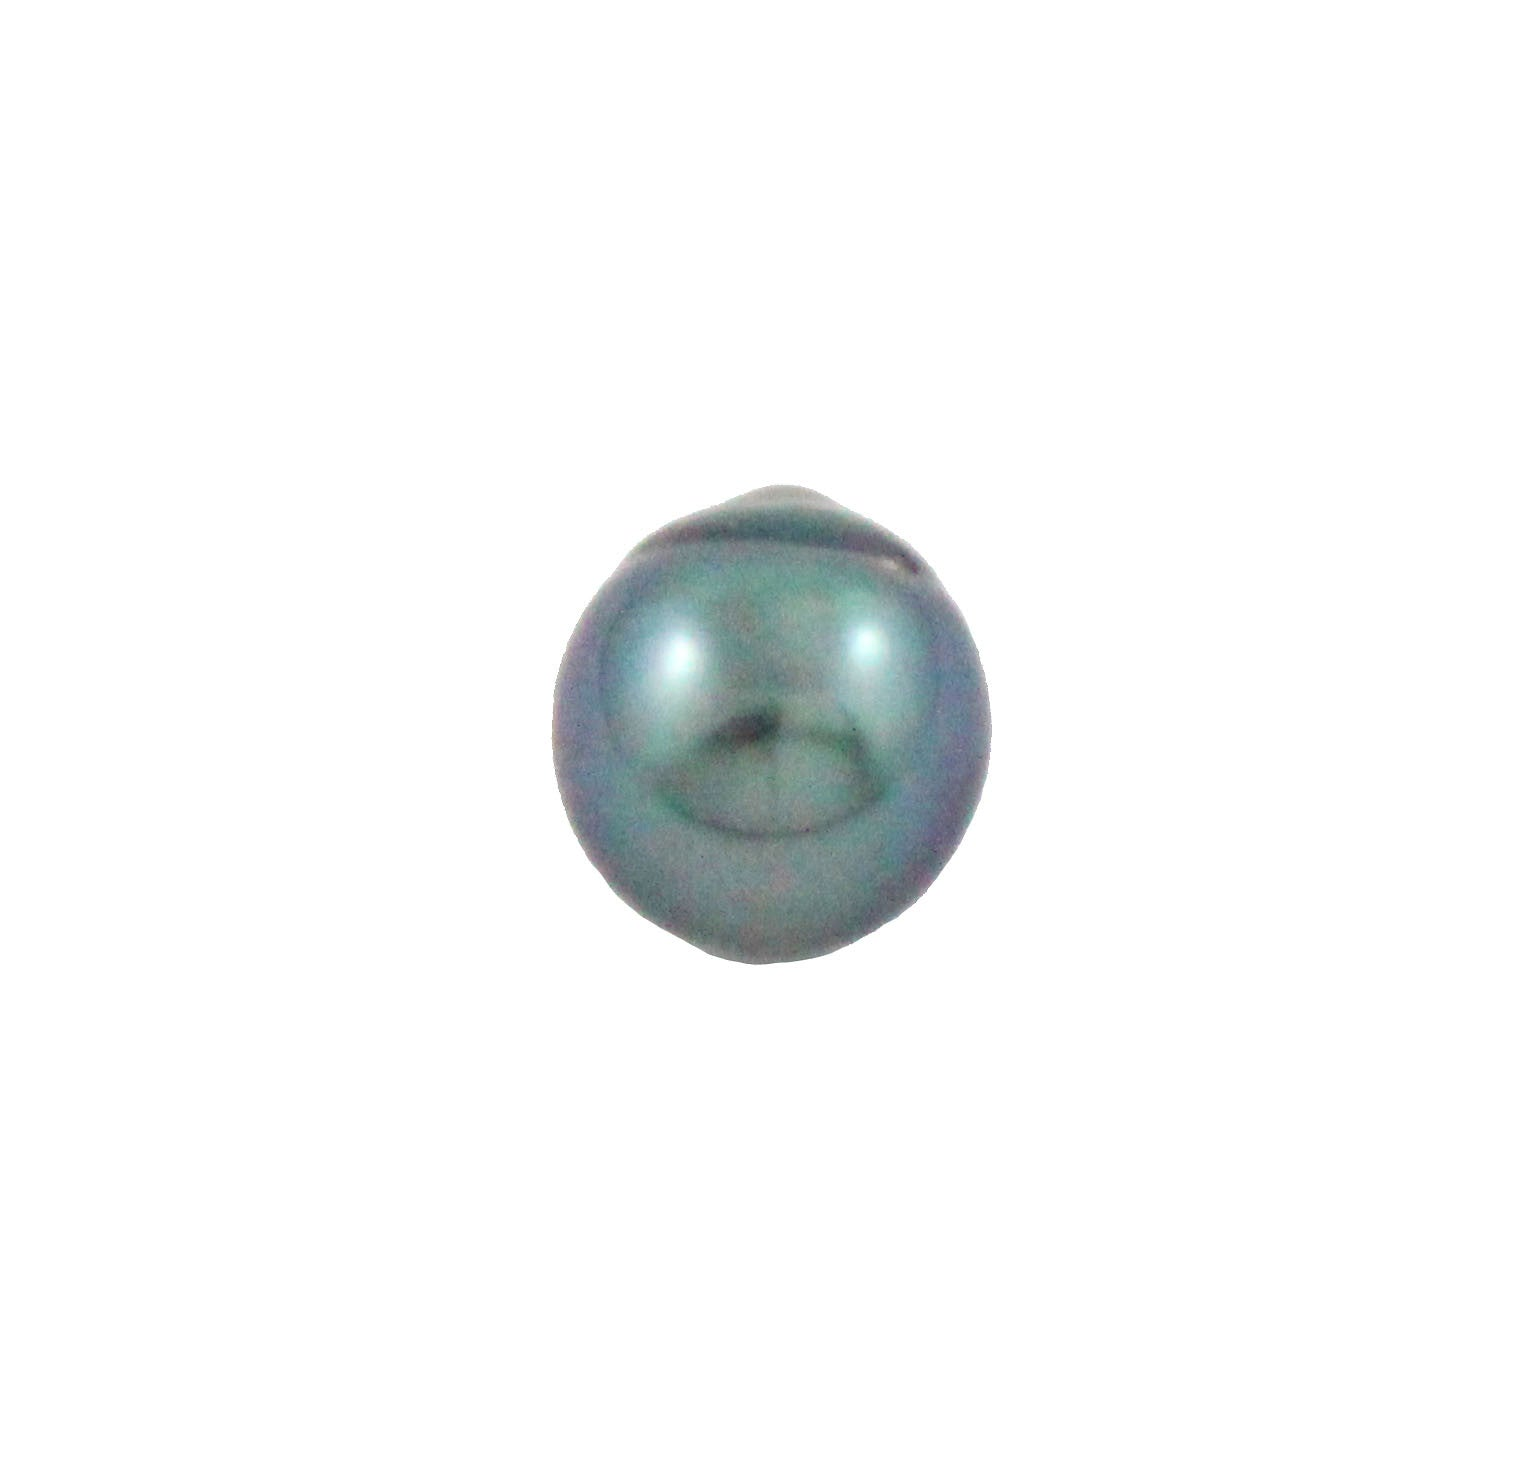 Tahitian pearl undrilled 0.94gr mm 9.53x8.65mm - Purchase only with custom order - Sarah Hughes - 3